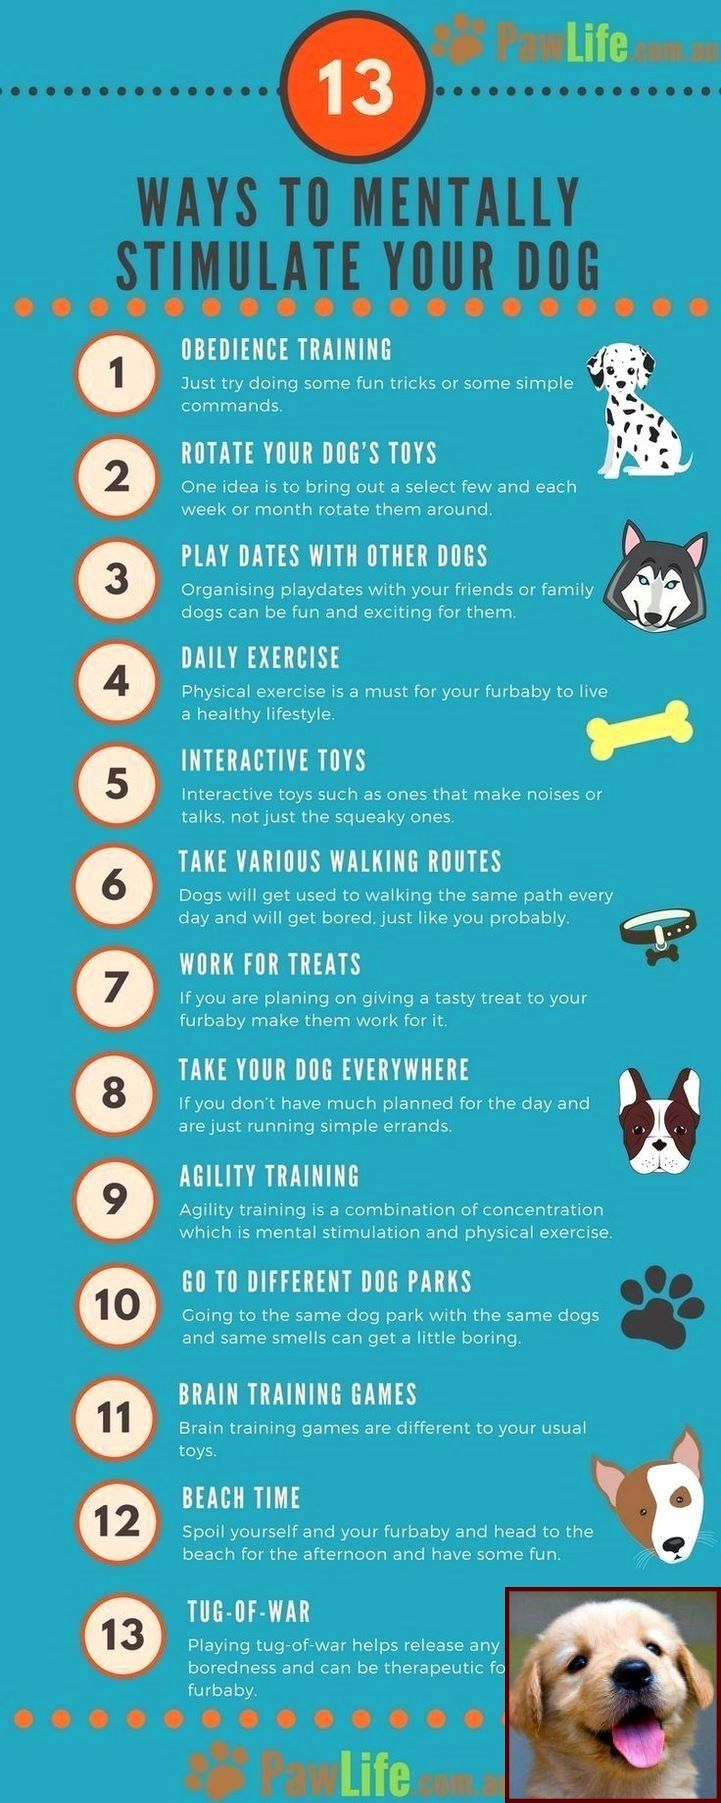 how long does it take for vitamins to work in dogs